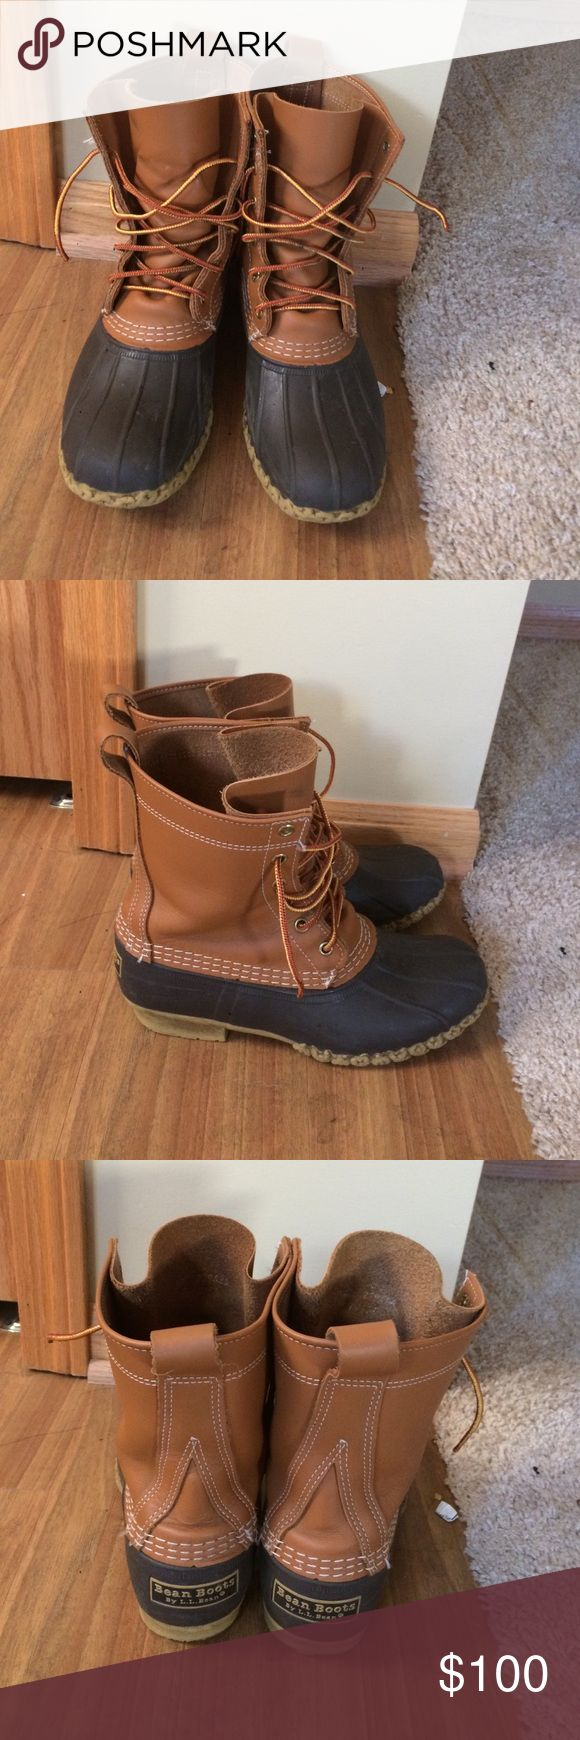 LL Bean Boots Thinsulate Size 5M with thinsulate! Fits like a women's 7.5. Received for Christmas last year and they're too big. Still have a ton of wear left in them! Gently used! LL Bean Shoes Winter & Rain Boots